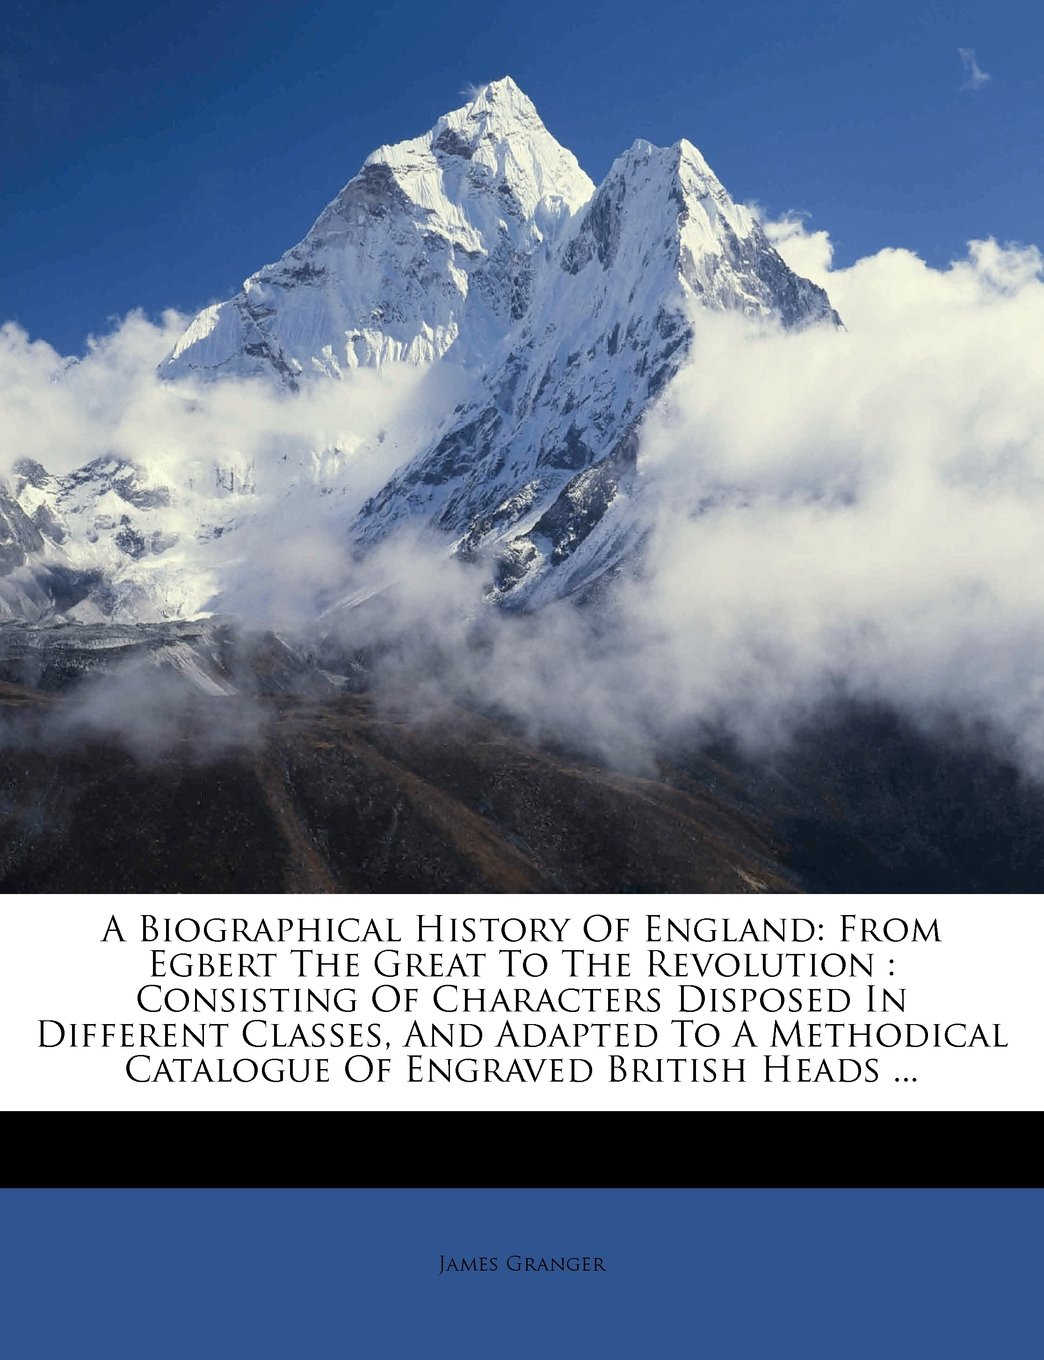 Download A Biographical History Of England: From Egbert The Great To The Revolution : Consisting Of Characters Disposed In Different Classes, And Adapted To A Methodical Catalogue Of Engraved British Heads ... pdf